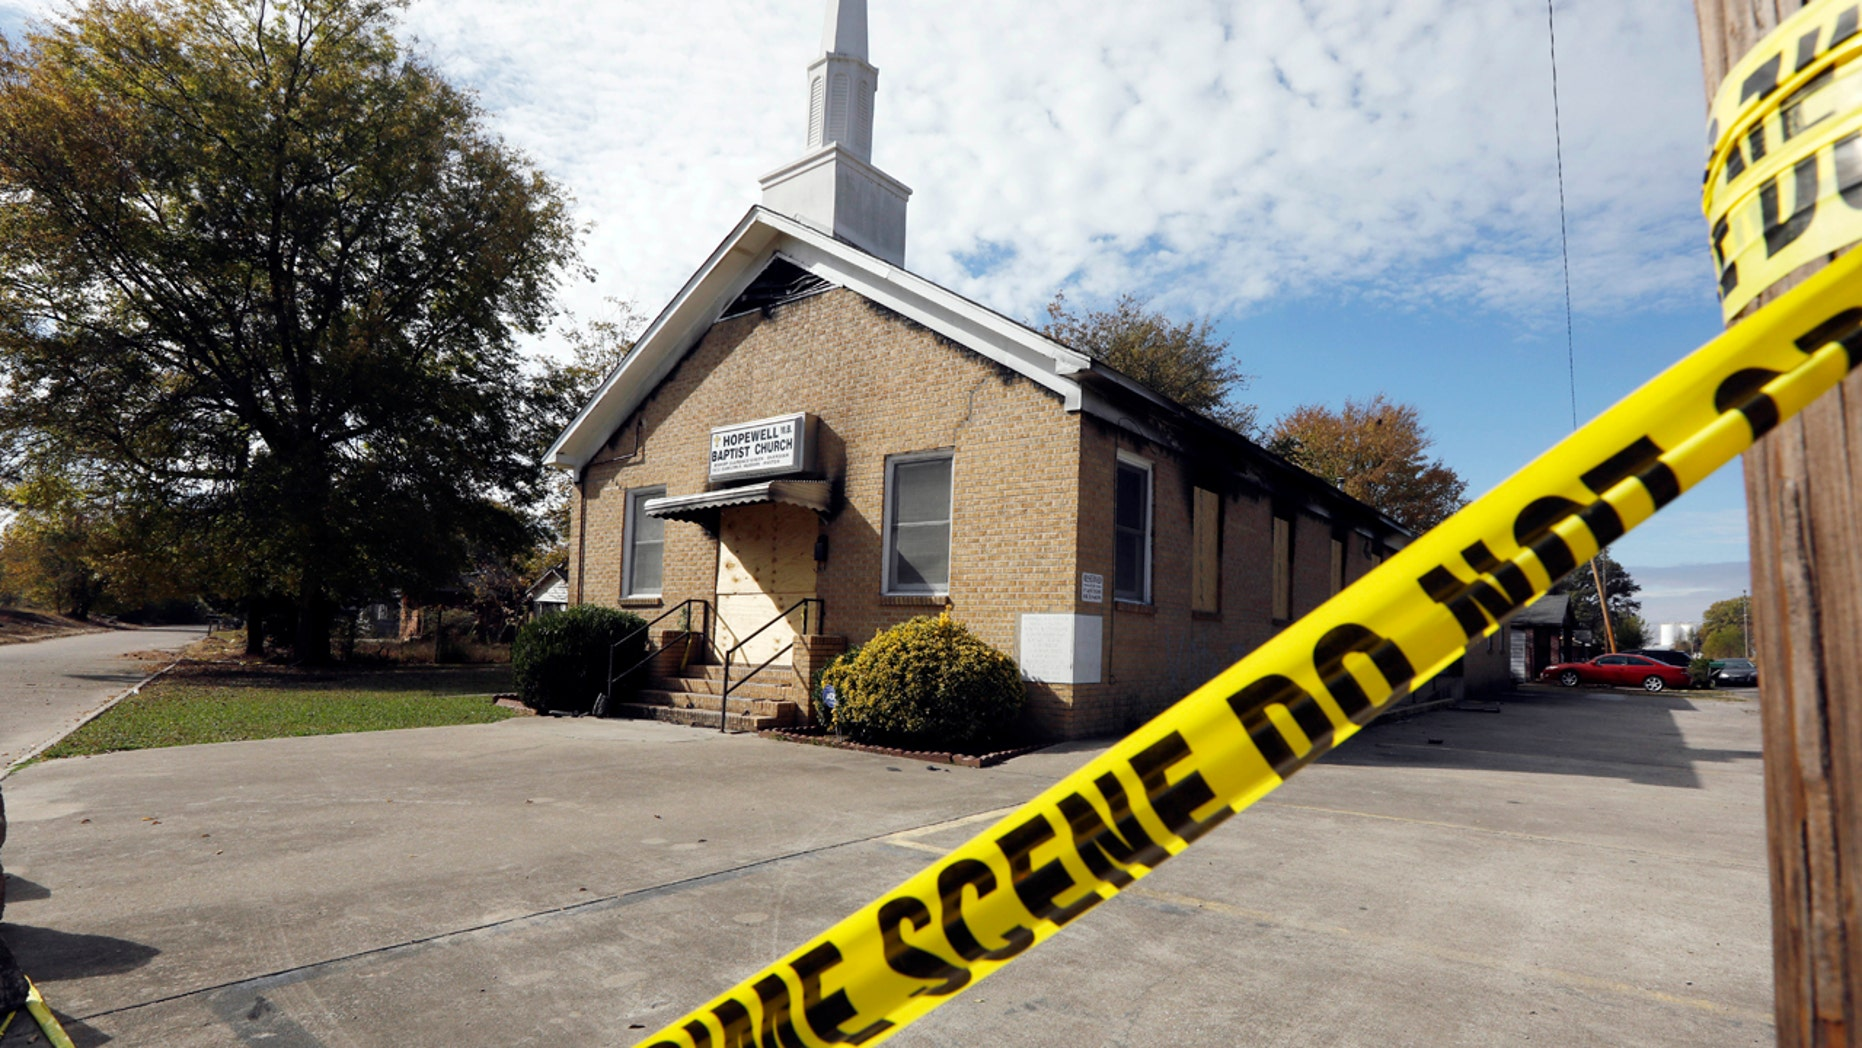 """Crime scene tape outlines the perimeter of the Hopewell Missionary Baptist Church in Greenville, Miss., on Tuesday, Nov. 22, 2016, after the church was burned and spray-painted with """"Vote Trump,"""" three weeks ago. T"""